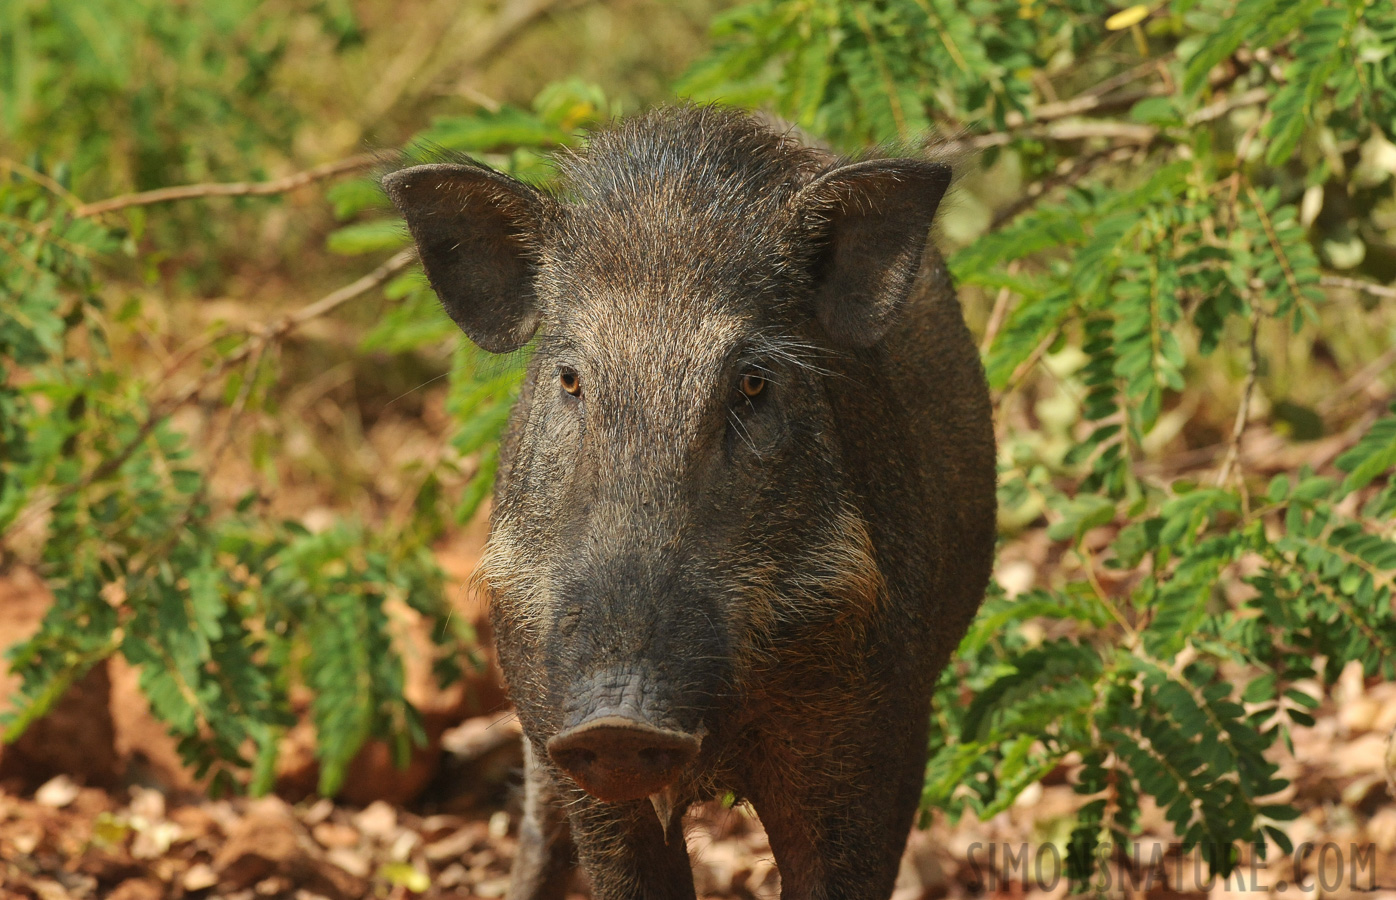 Indian boar [Sus scrofa cristatus]